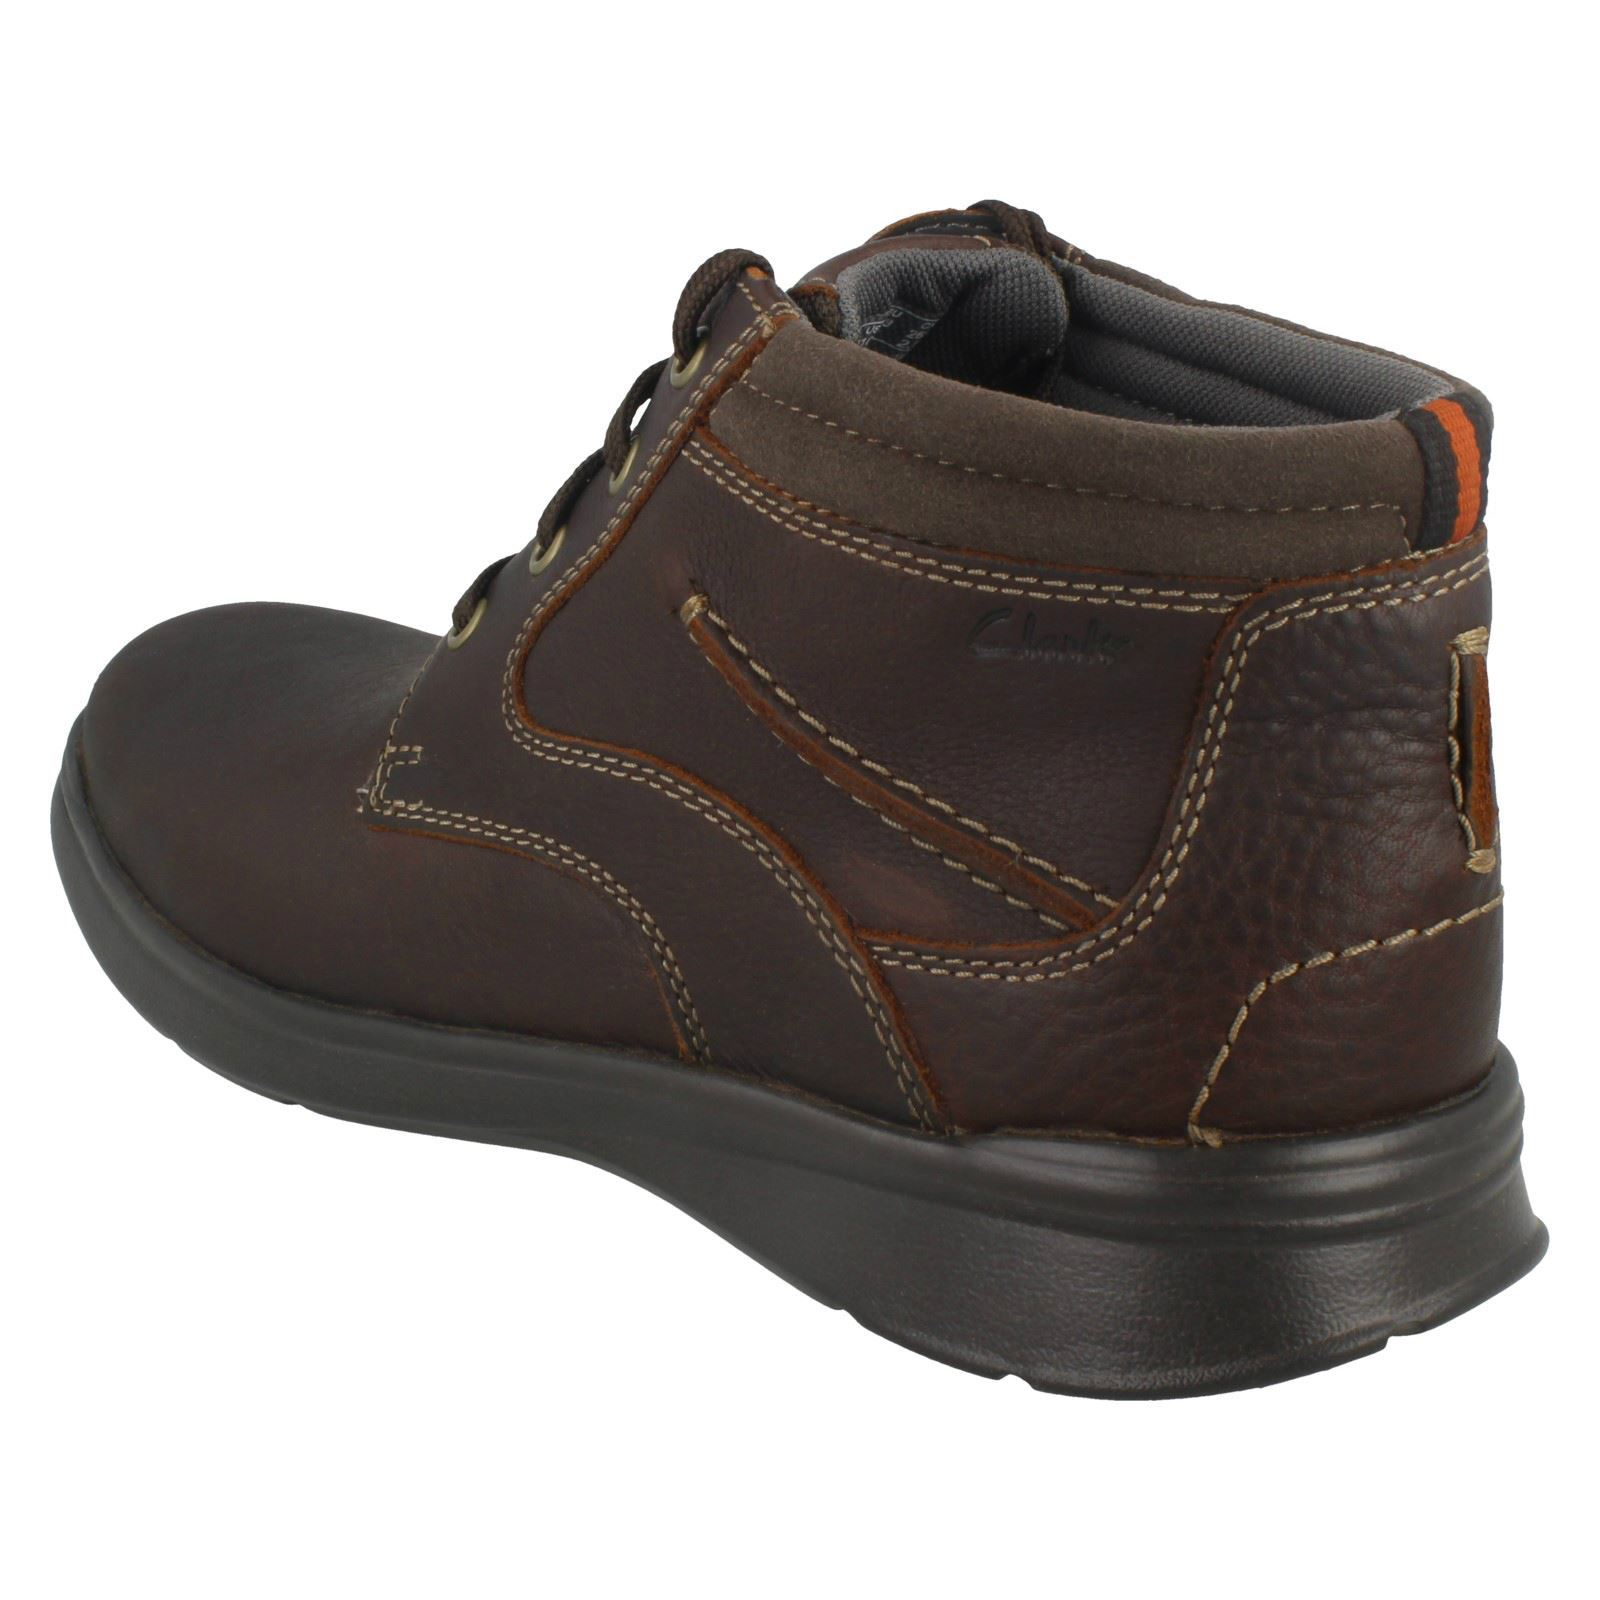 Mens-Clarks-Cotrell-Rise-Casual-Lace-Up-Ankle-Boots thumbnail 13